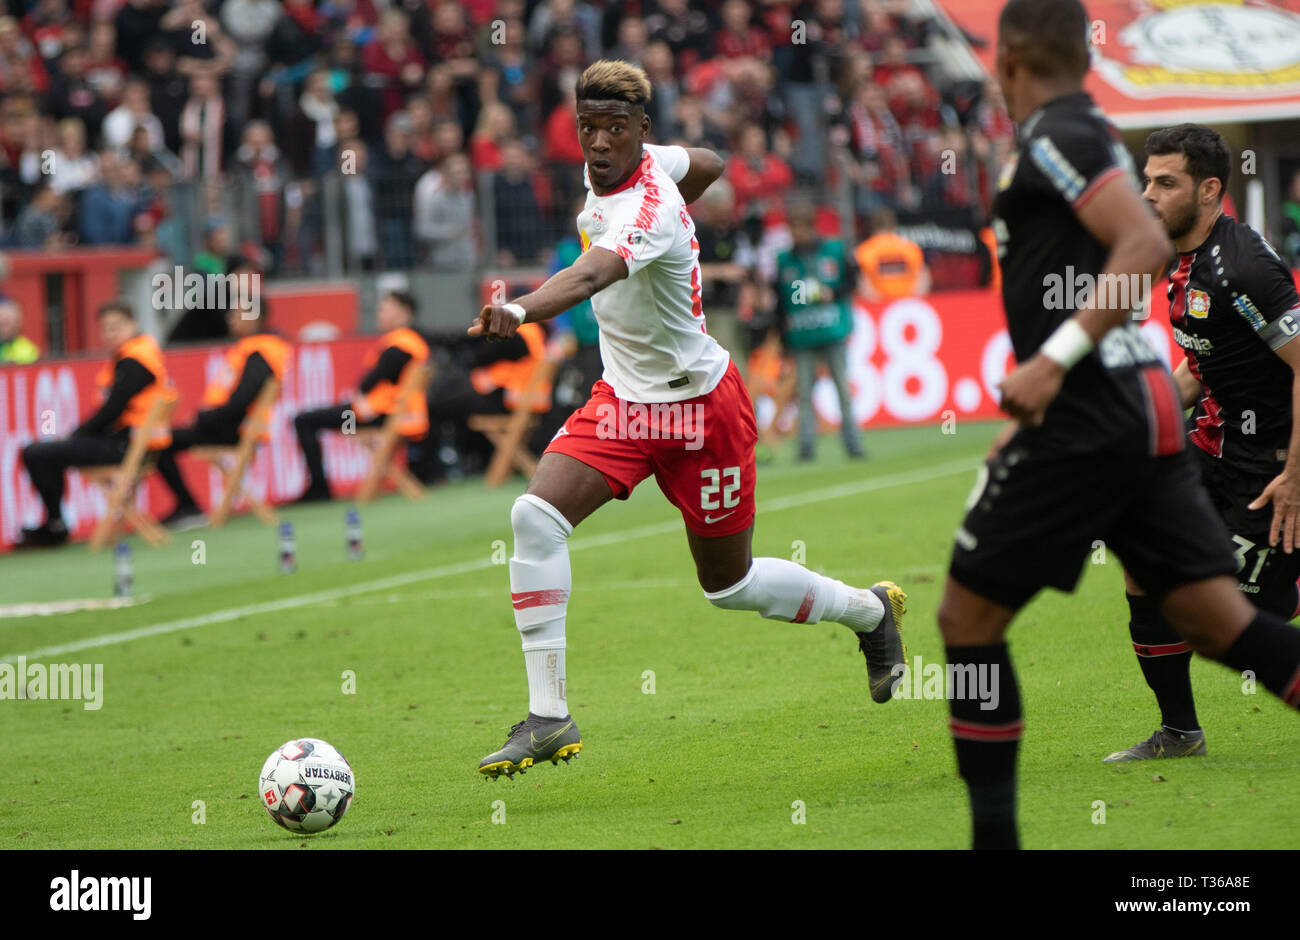 Leverkusen, Germany, April 6 2019, Bundesliga, Bayer 04 Leverkusen vs RB Leipzig: Nordi Mukiele (Leipzig) in action.                  Credit: Juergen  - Stock Image